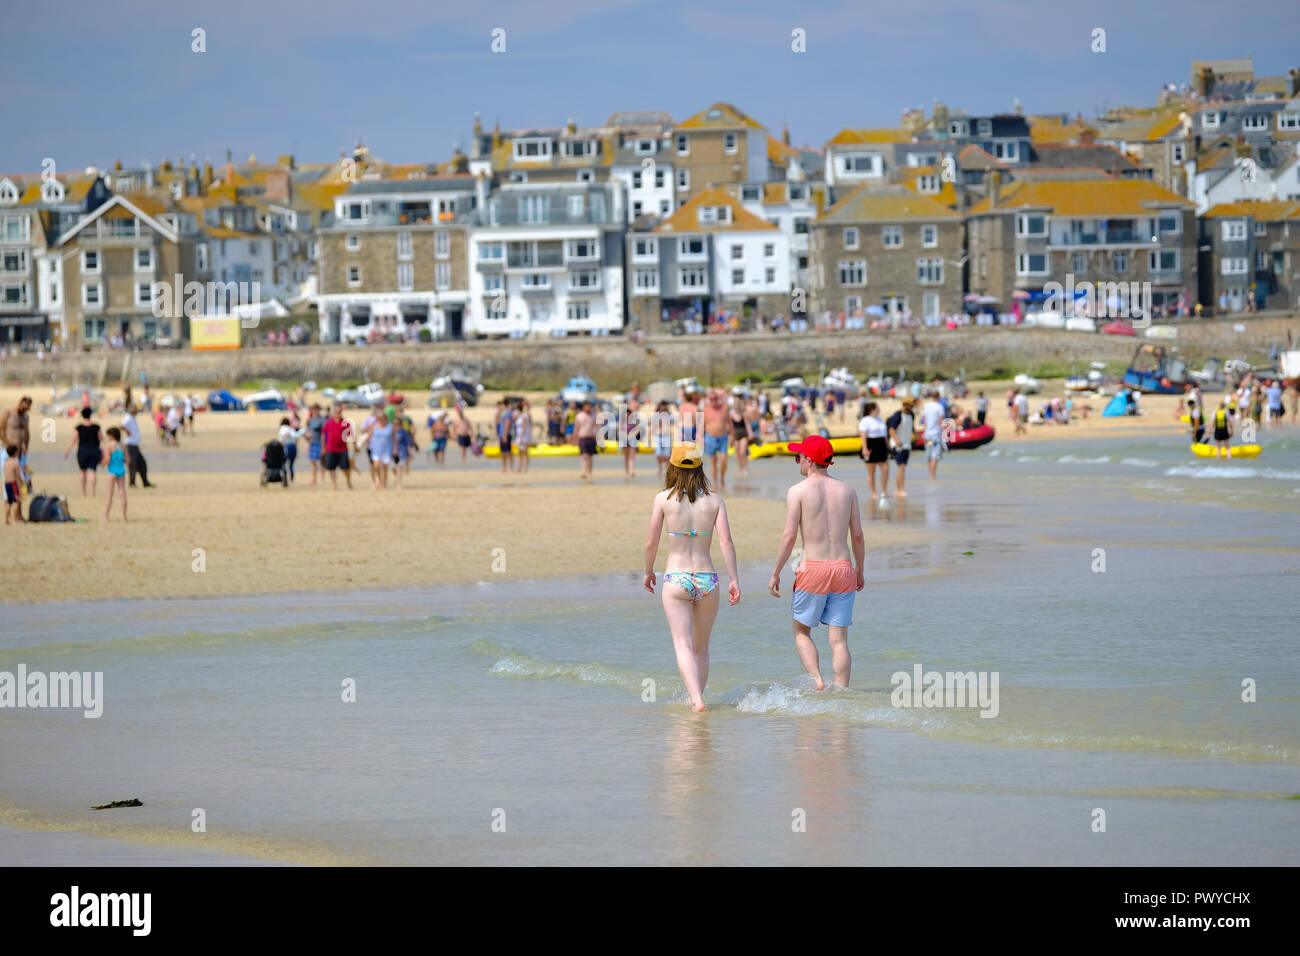 Holidaymakers on the Harbour Beach in St Ives, Cornwall - Stock Image